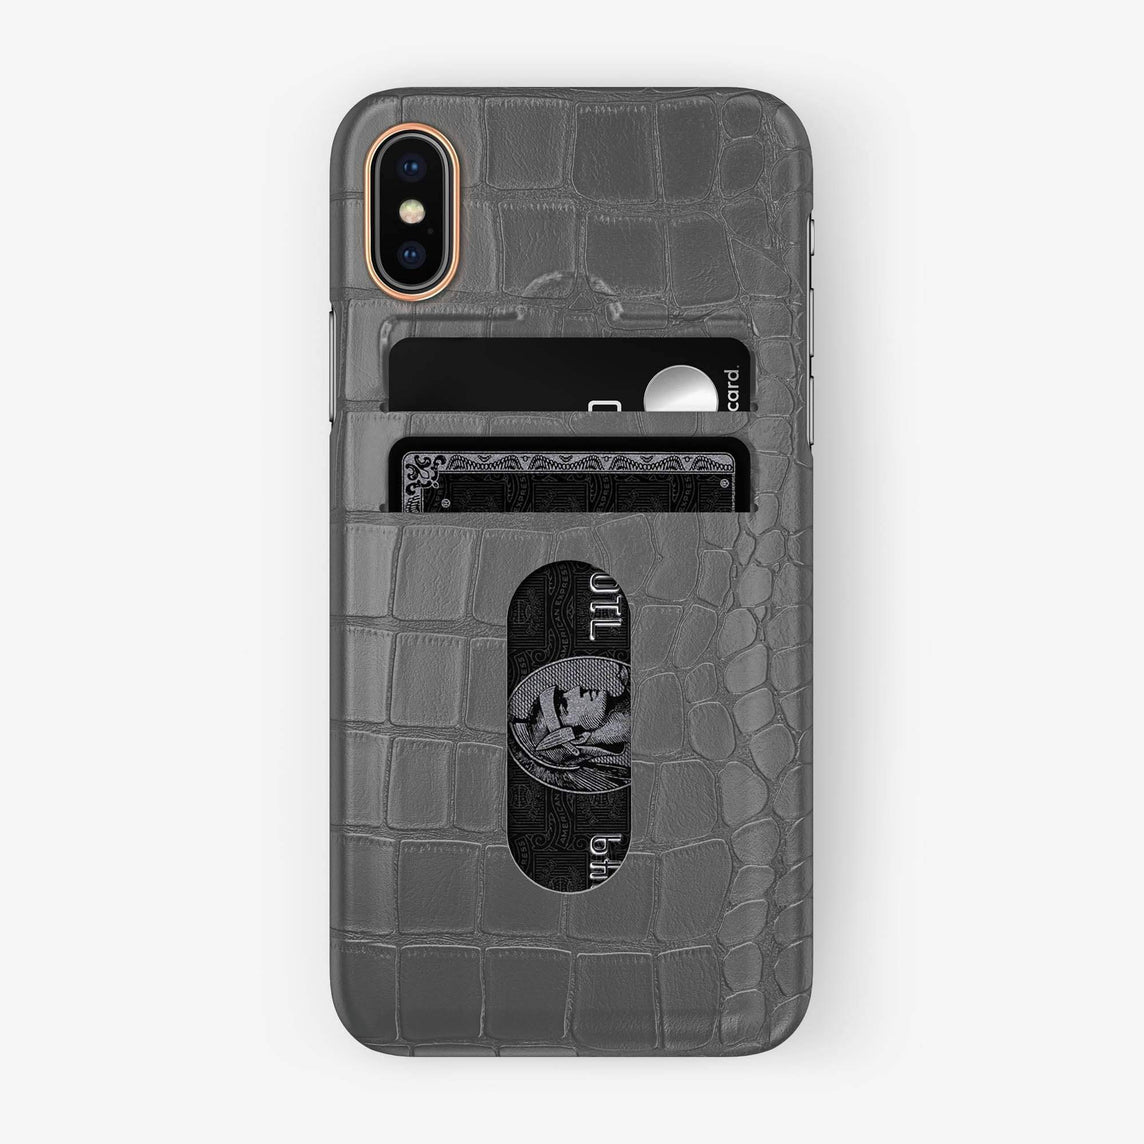 Alligator Card Holder Case iPhone Xs Max | Grey - Rose Gold - Hadoro